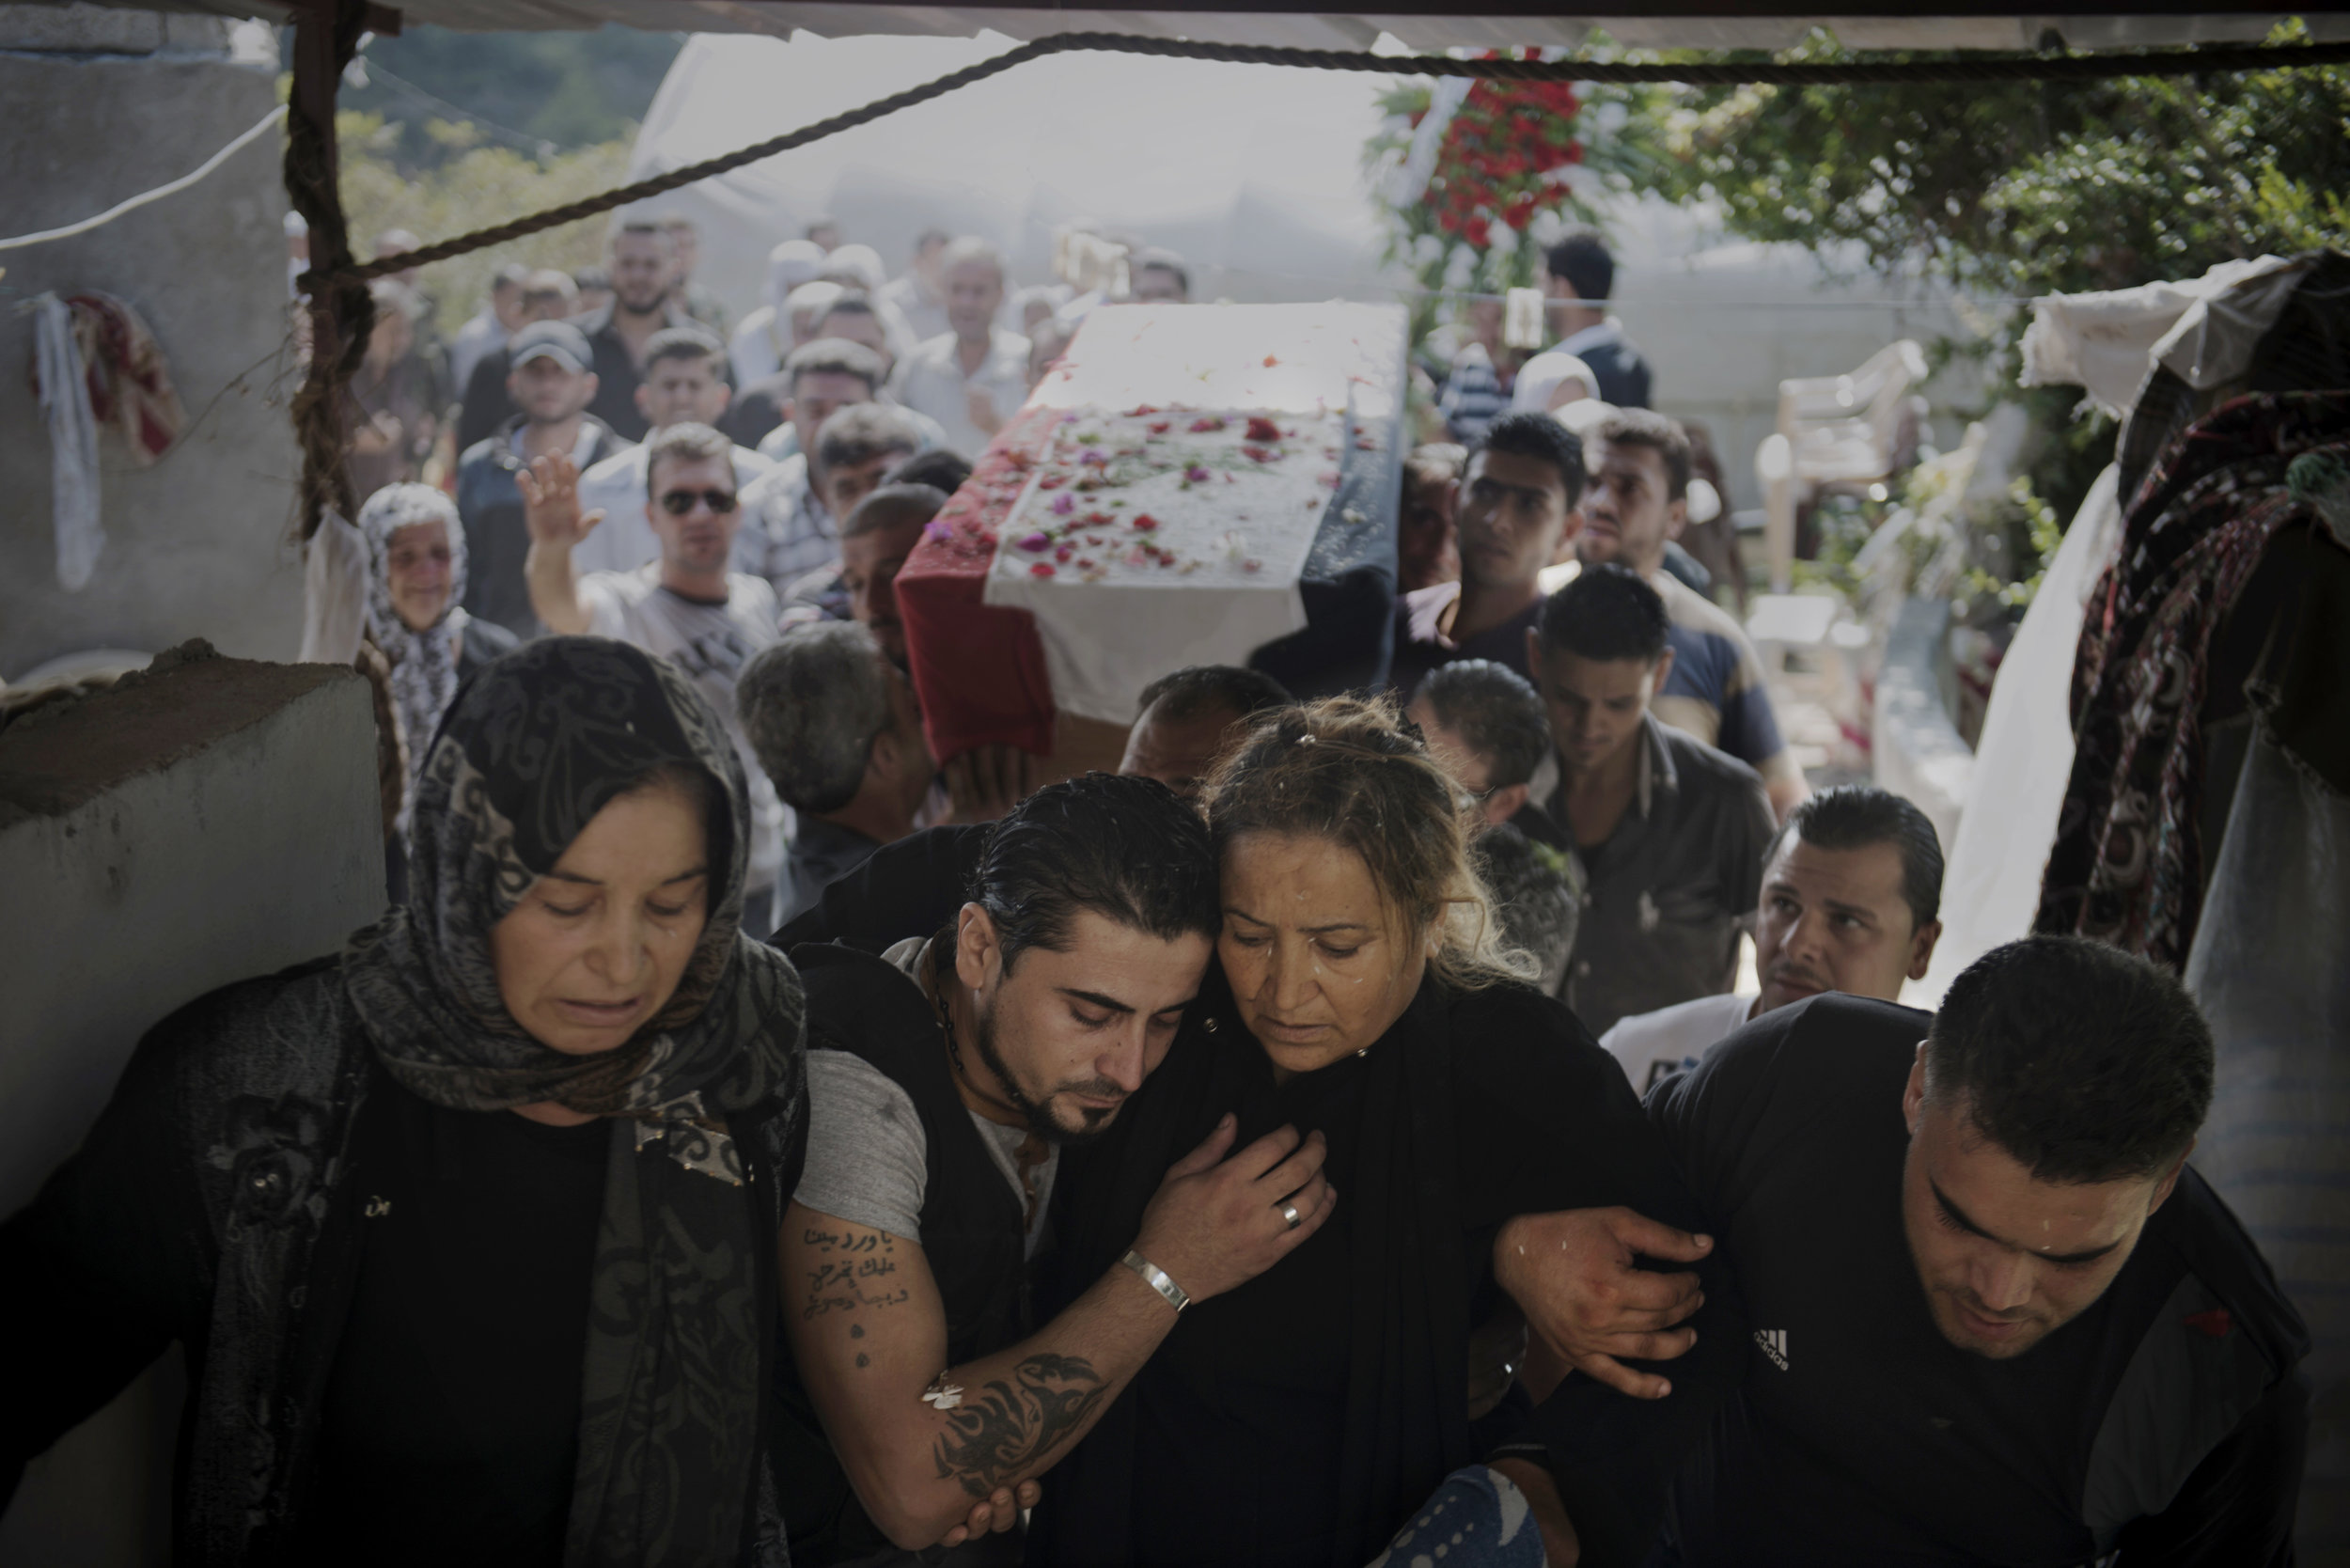 Syria, Latakia, September 2013, Bassel Barhoum (center) hugs his mother Jamila Marshid during his brother's funeral in the village of Daqaqa in Latakia Province, Syria. Abu Layth died while fighting for the Syrian Army.